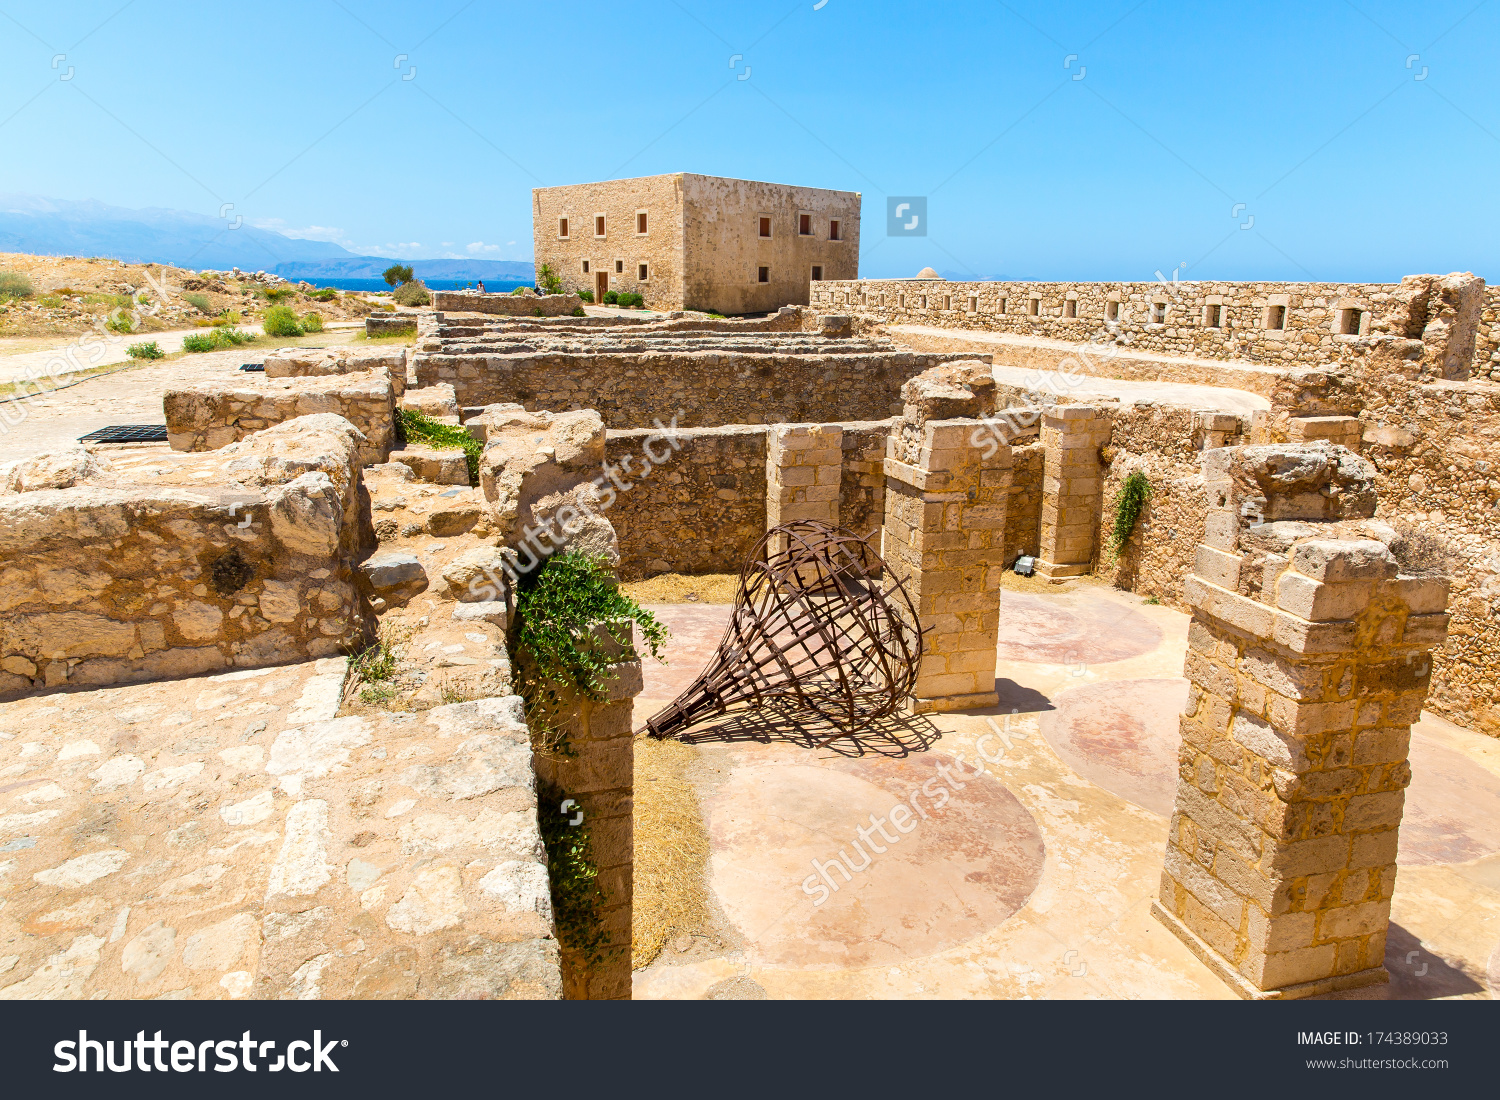 Ruins Of Old Town In Rethymno, Crete, Greece. It Is The Largest.